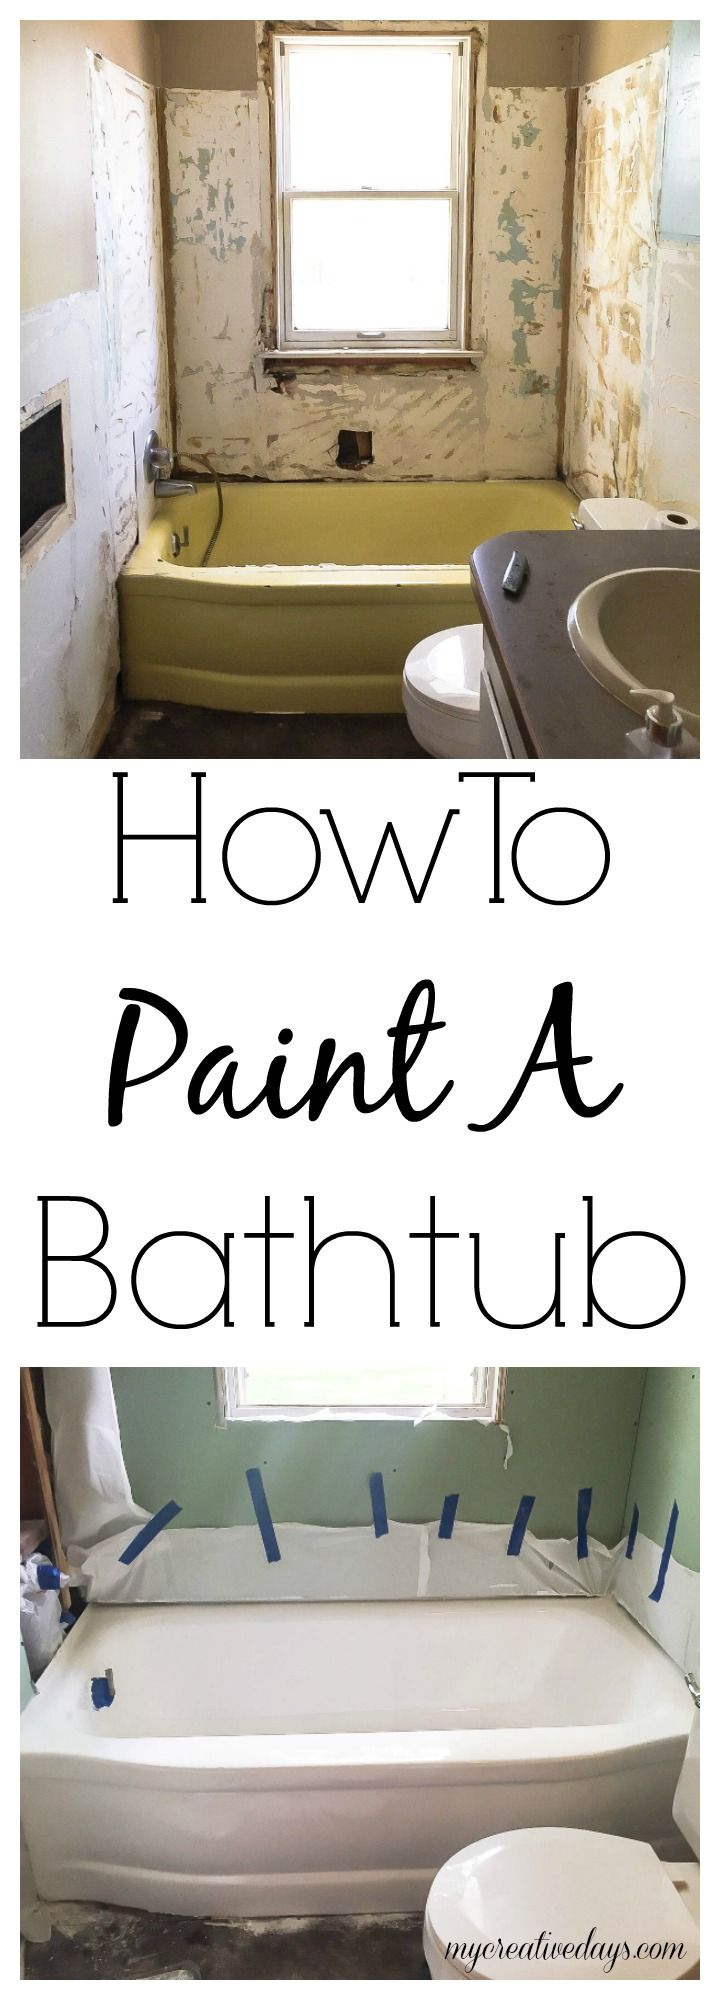 How to paint a bathtub easily inexpensively diy